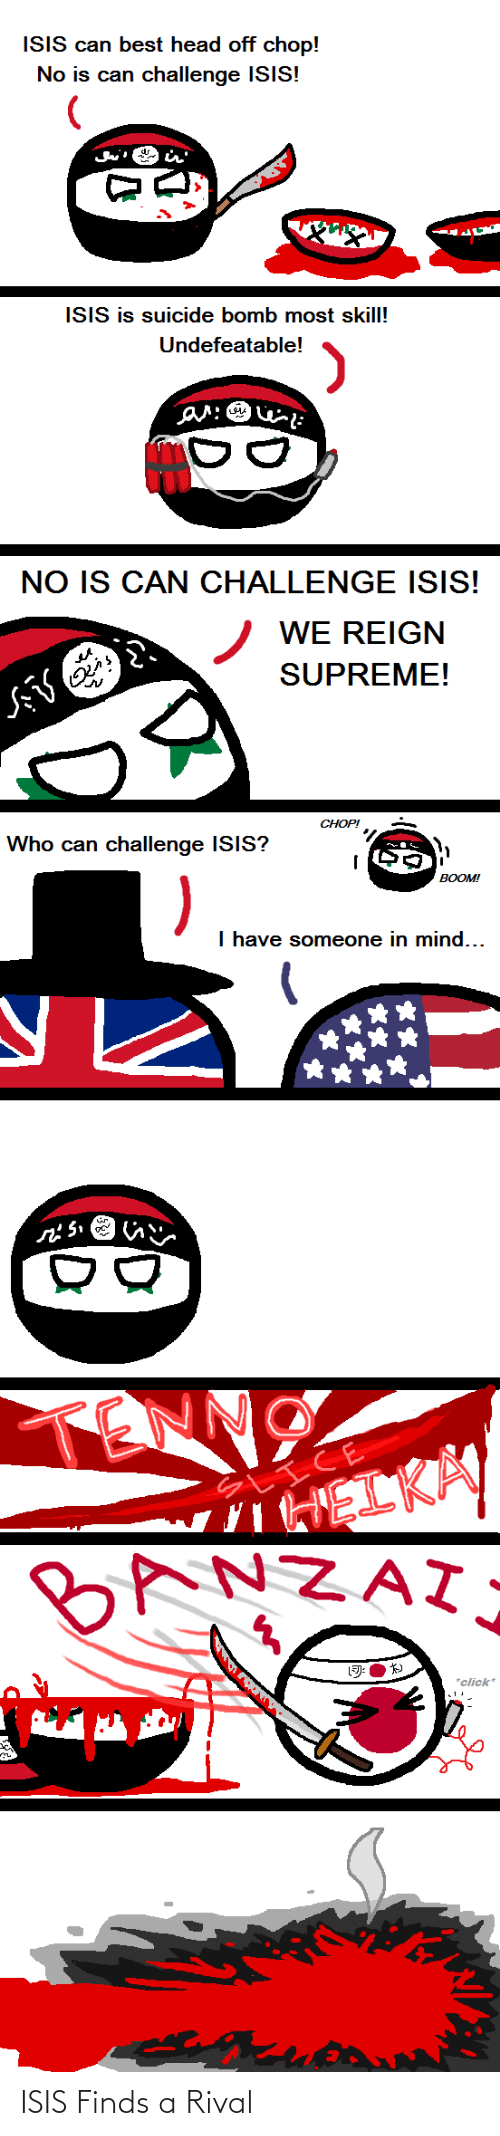 ISIS: ISIS Finds a Rival